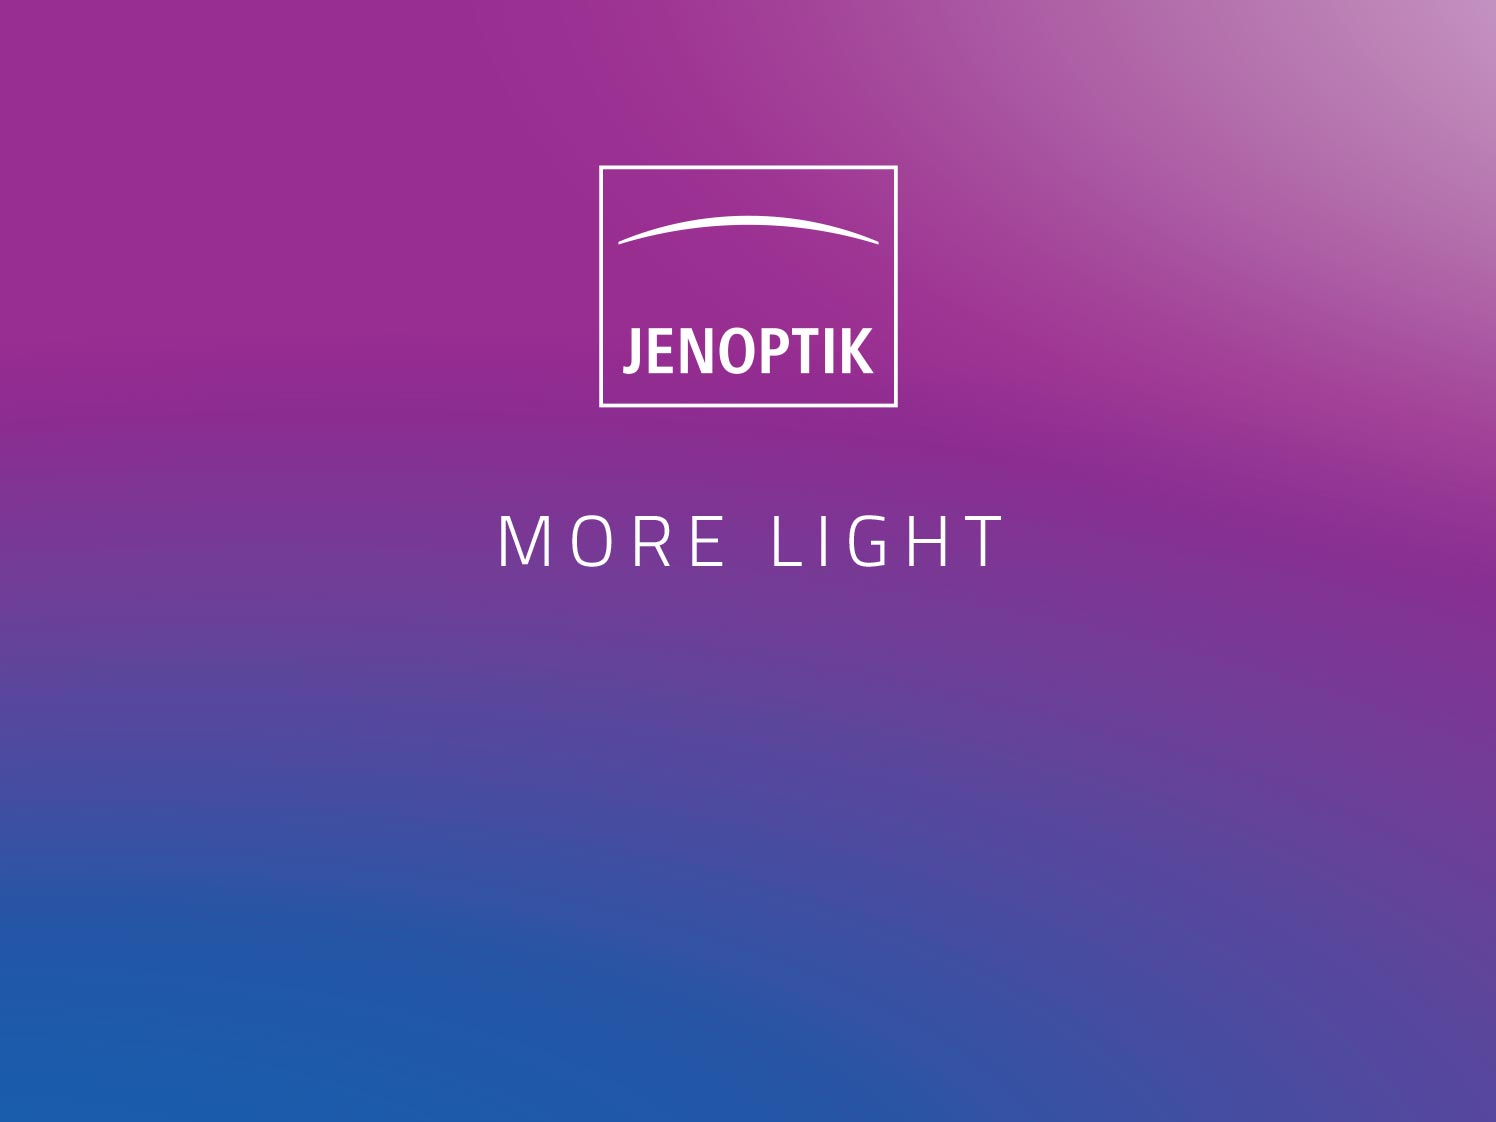 Jenoptik More Light